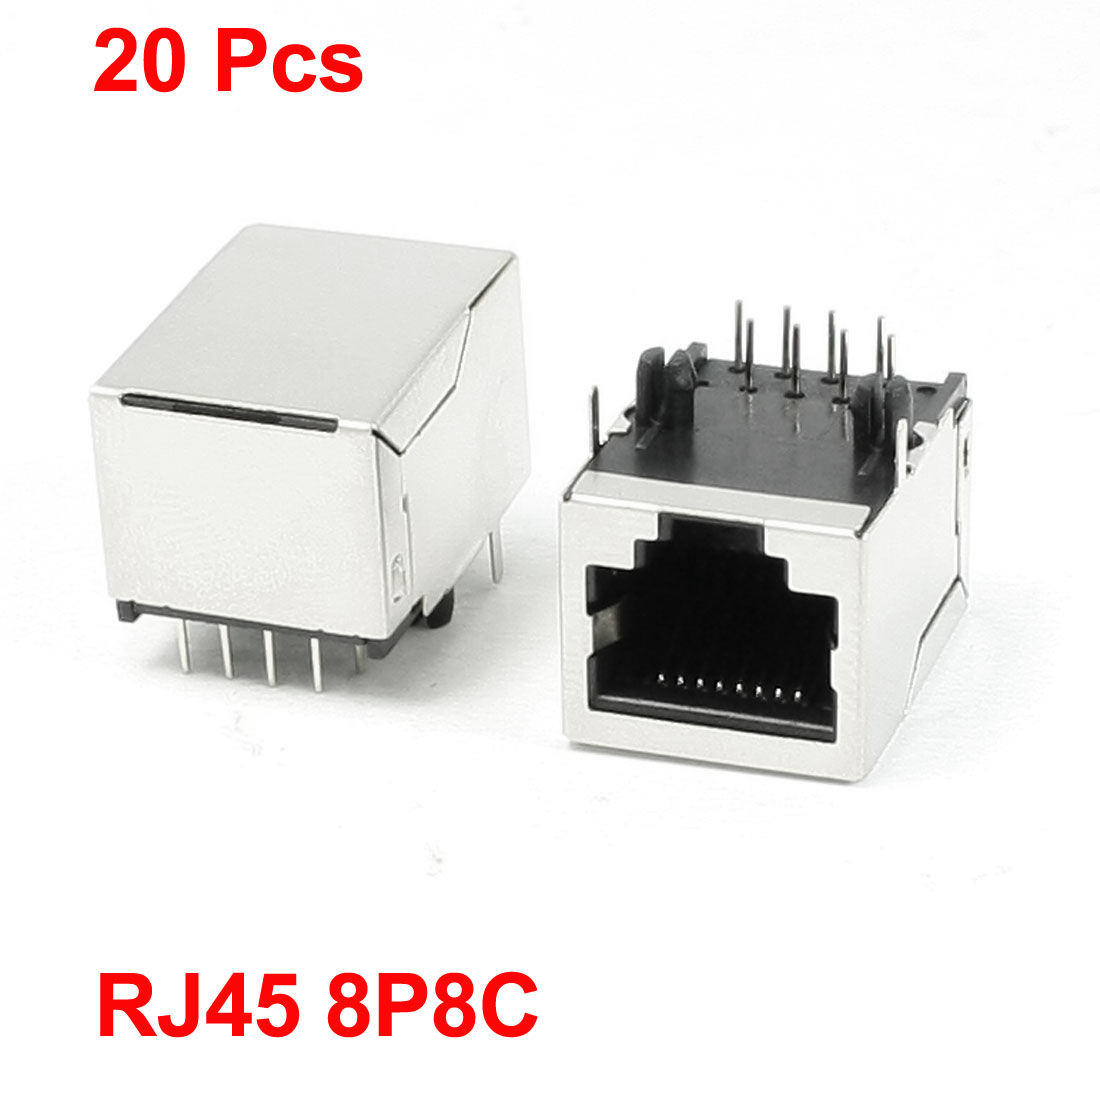 20Pcs Stainless Steel Shell 8P8C RJ45 PCB Jacks Connector 20mm x 15.5mm x 14mm